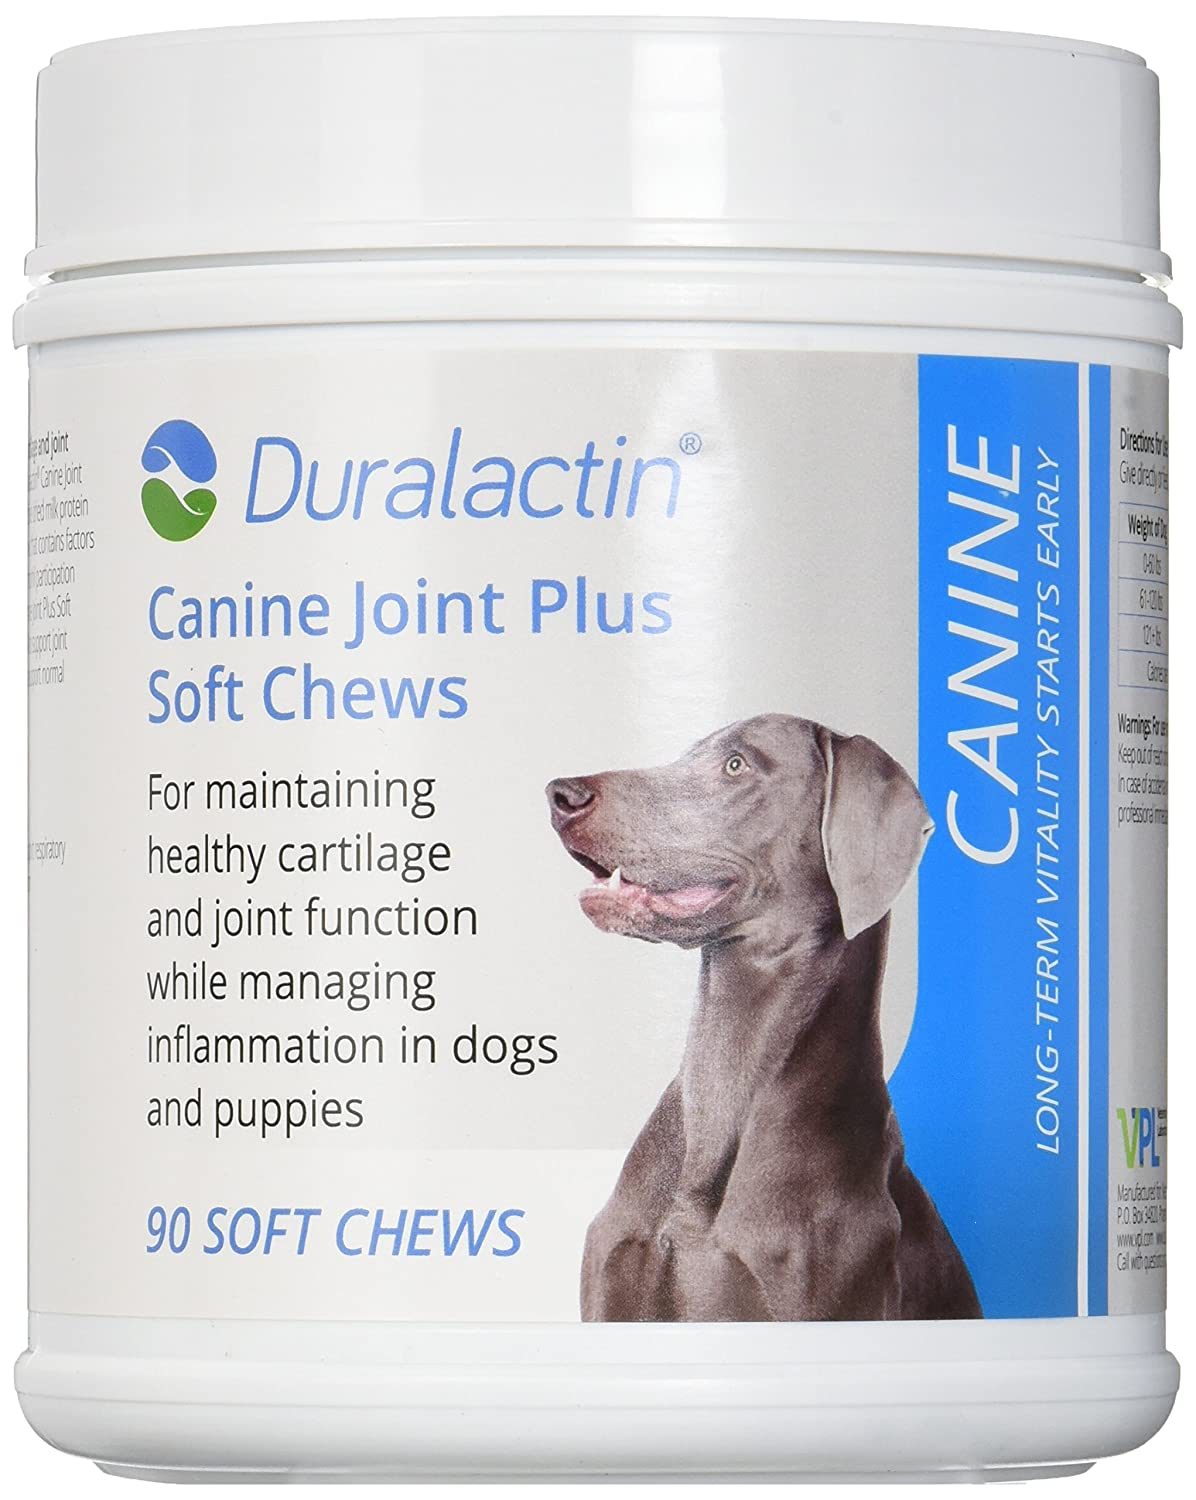 Duralactin Canine Joint Plus Soft Chews Triple Strength 90 Soft Chews